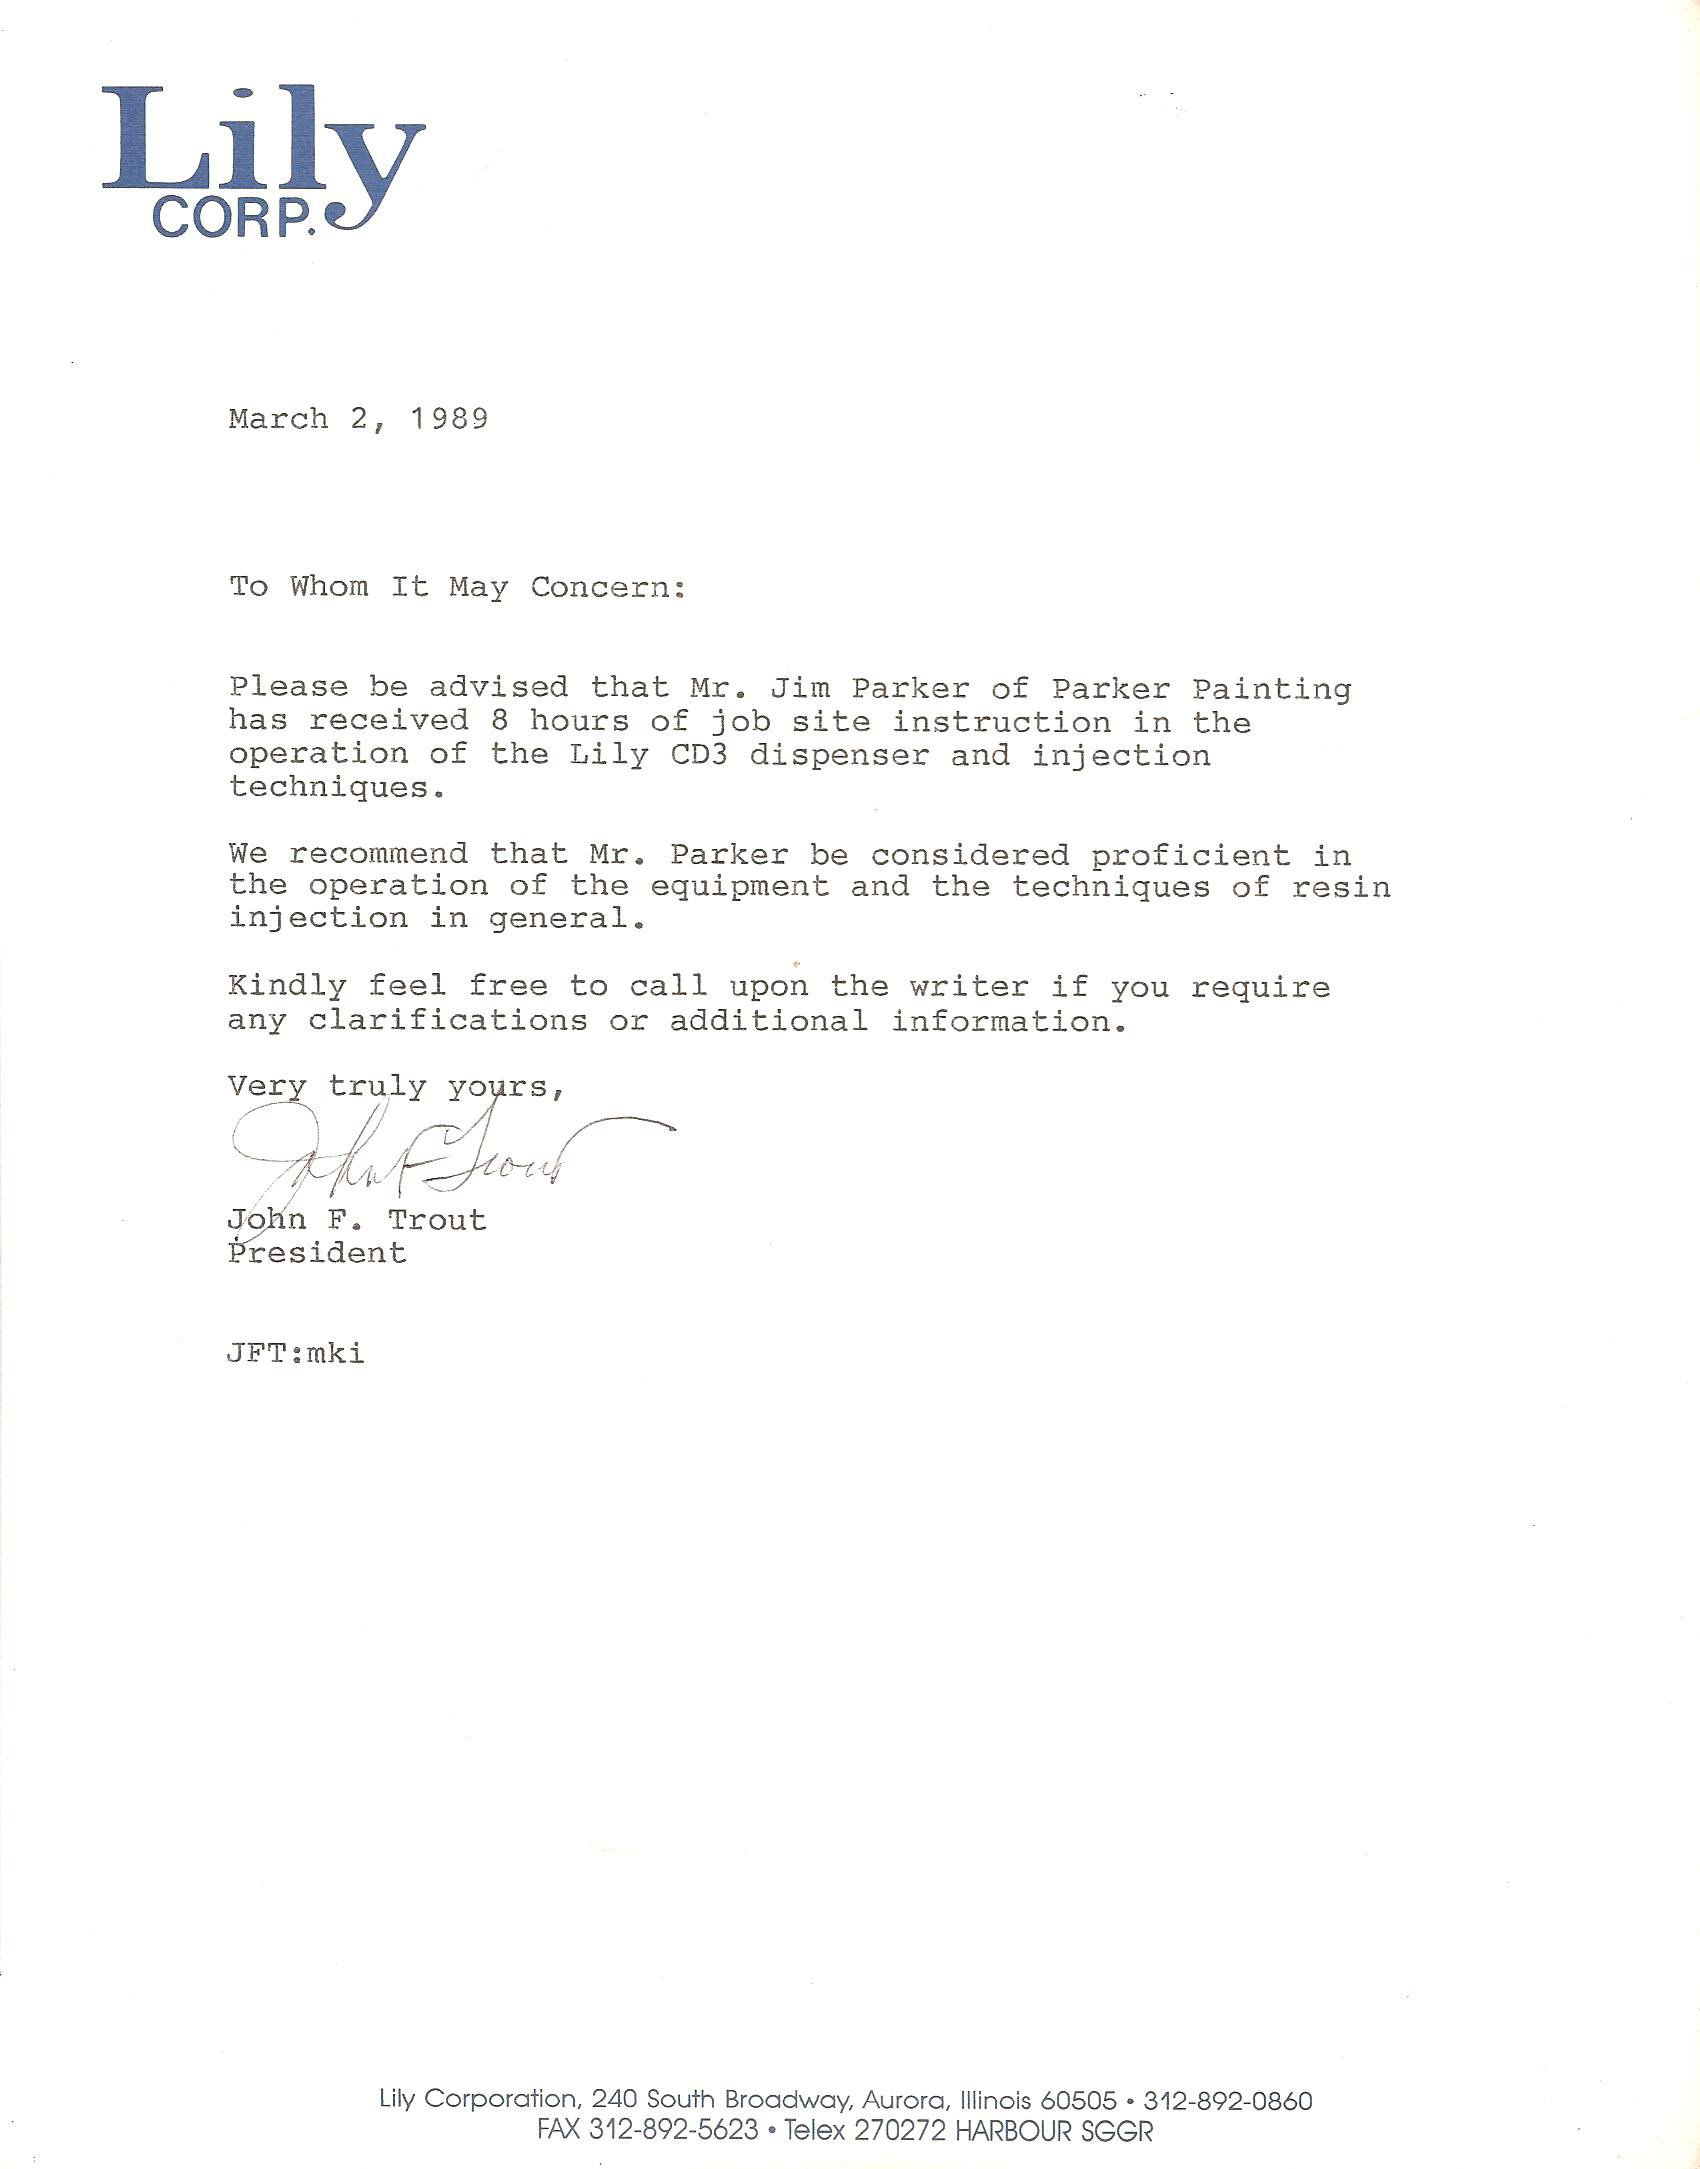 Lily Corp document